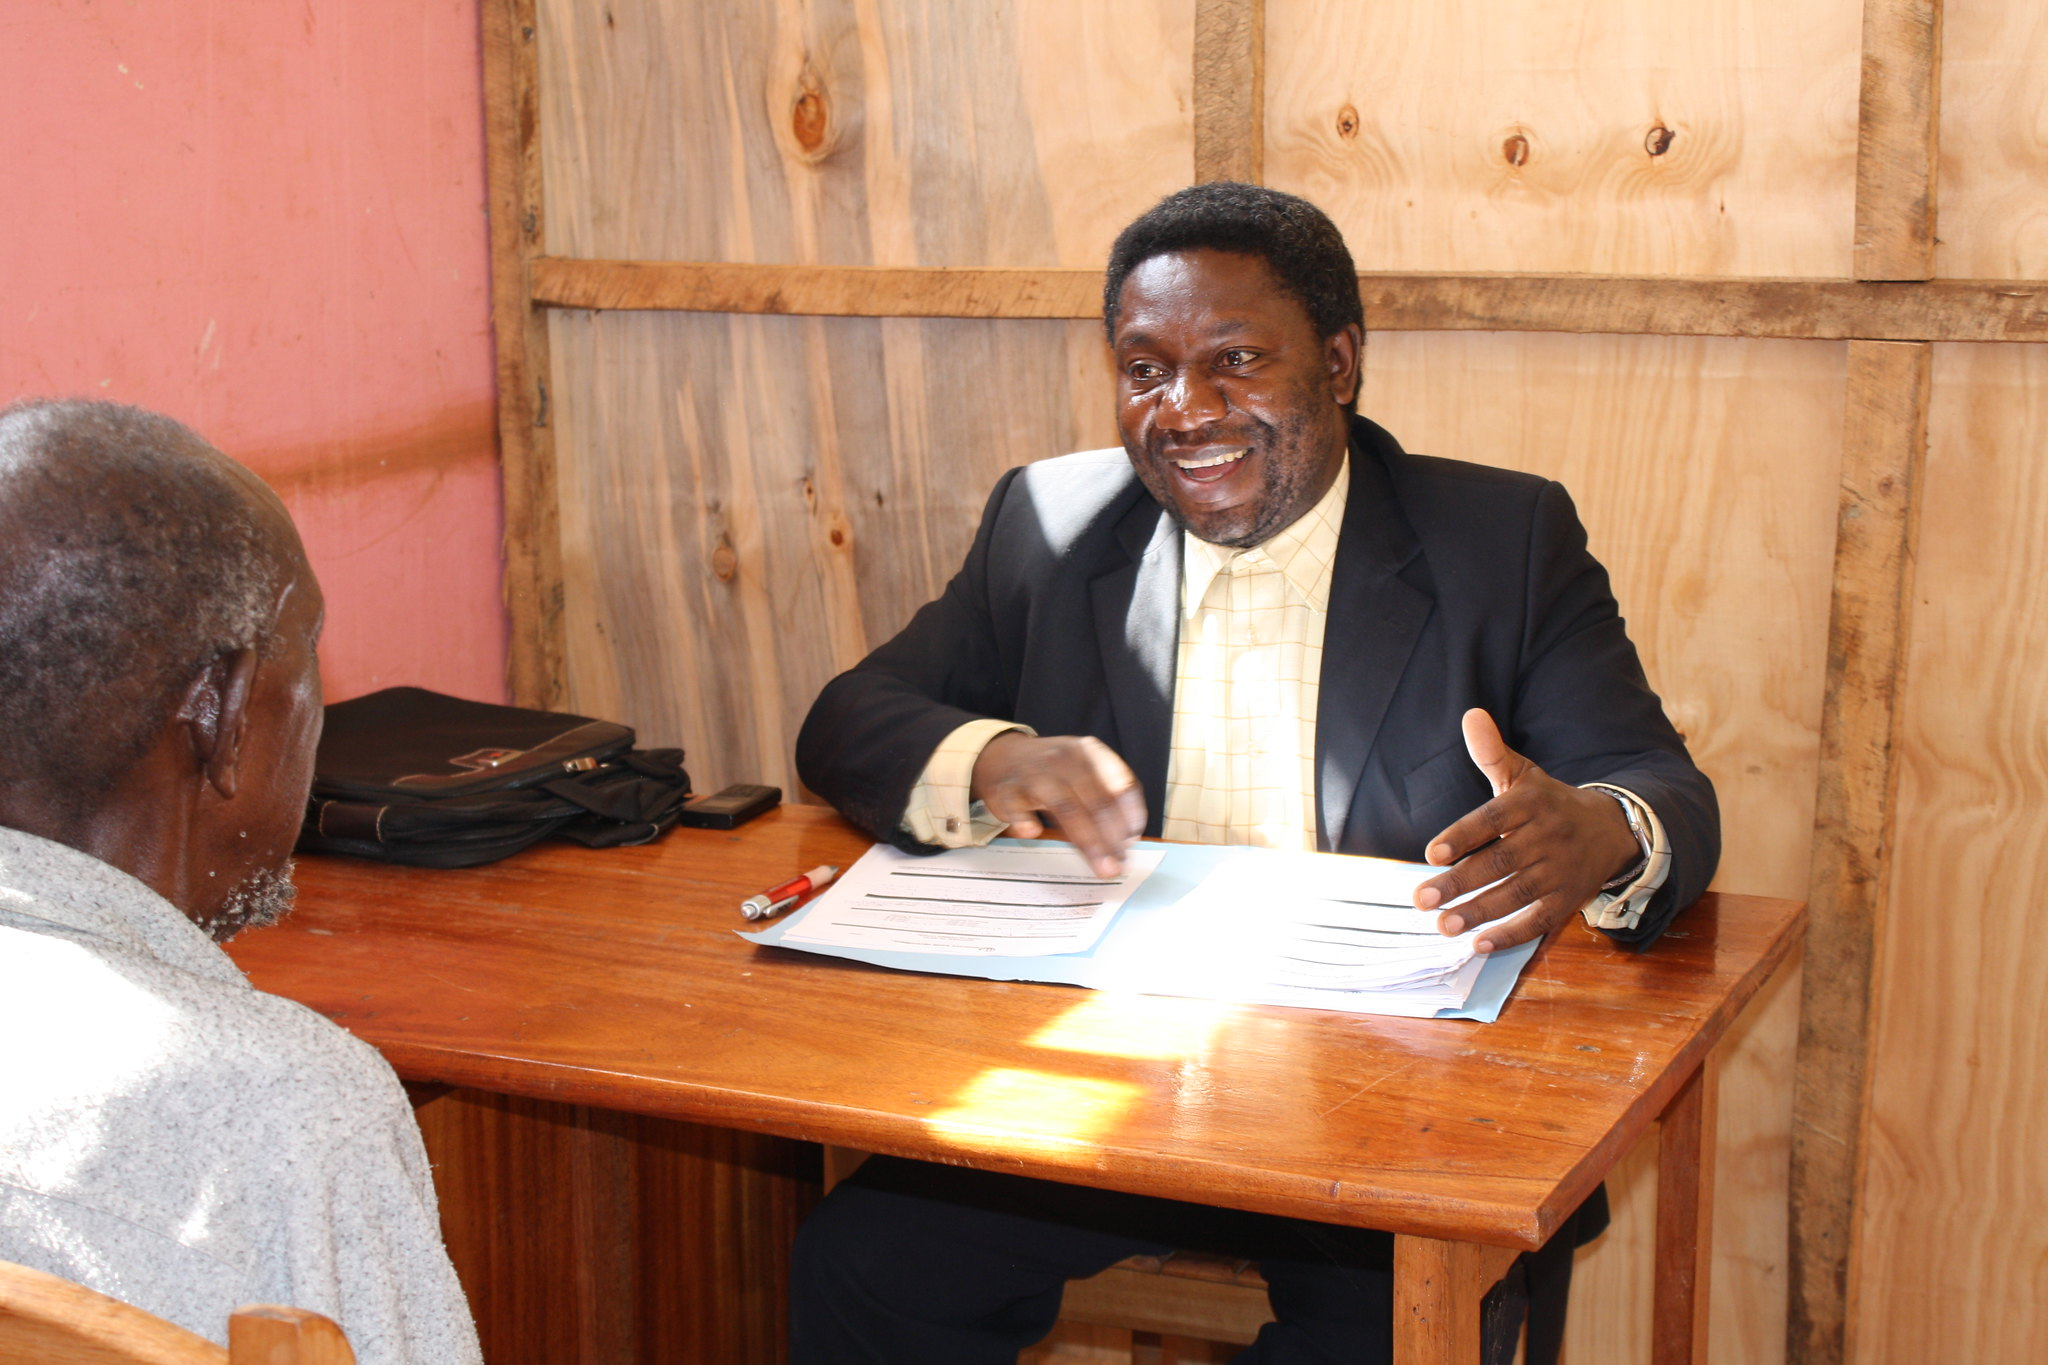 Mwenga is a local lawyer who volunteers his time and expertise at a free legal clinic near South Kivu